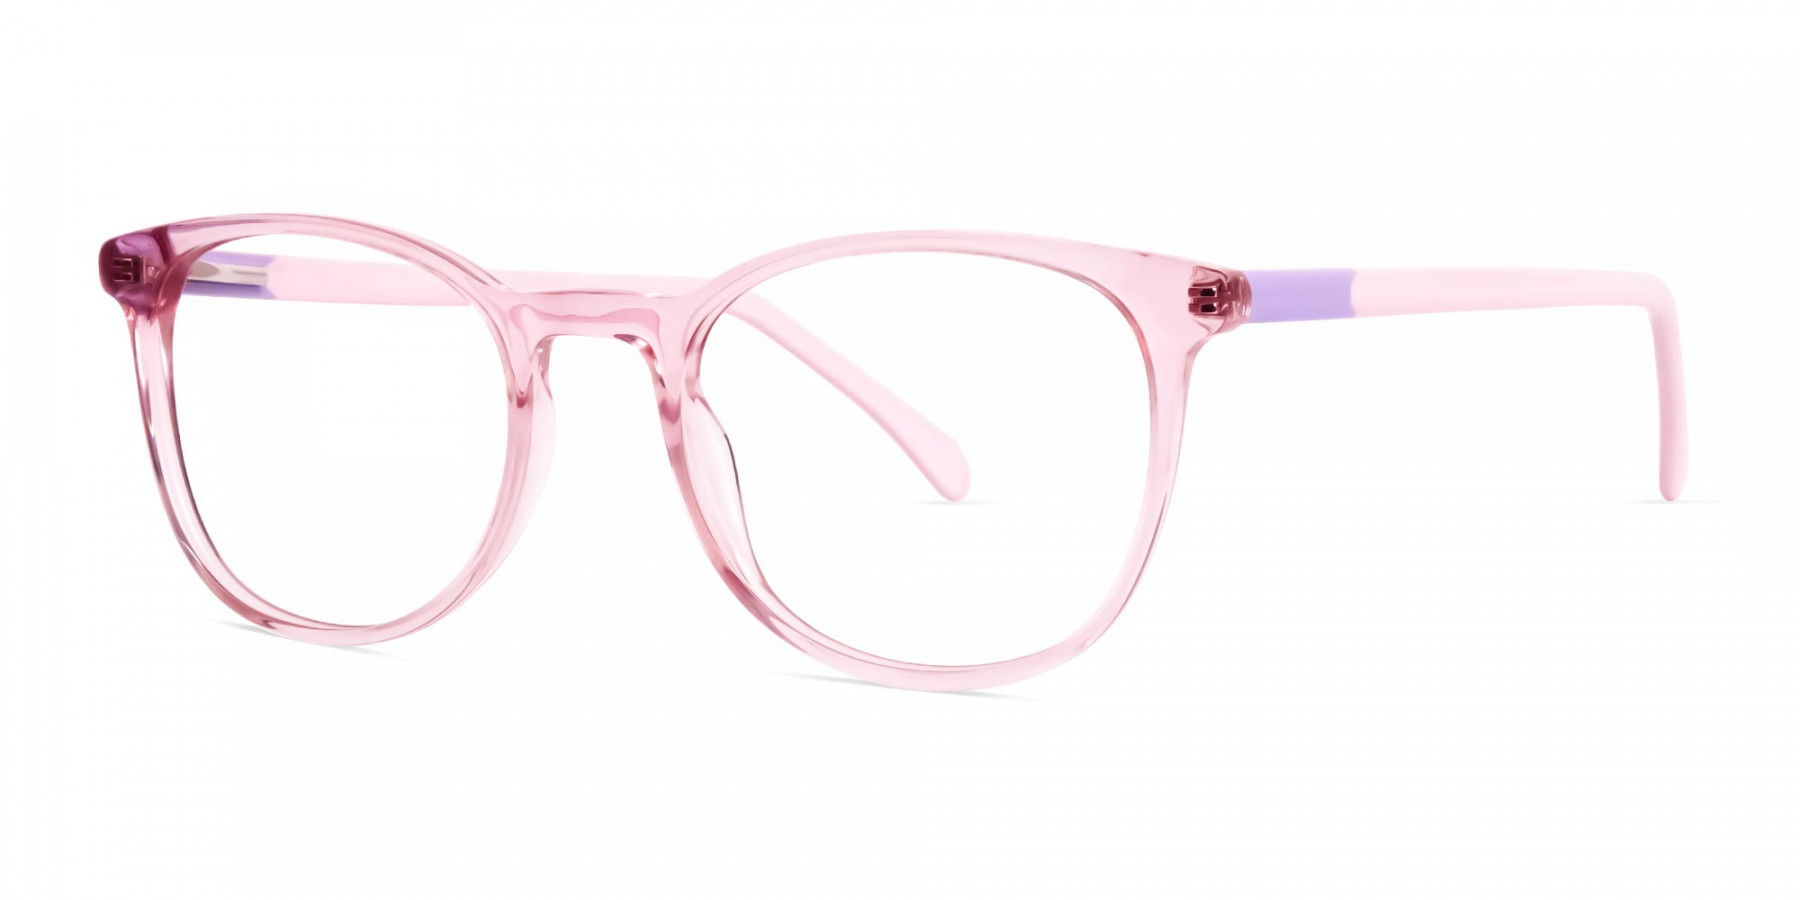 Crystal-and-transparent-blossom-Pink-Round-Glasses-Frames-1